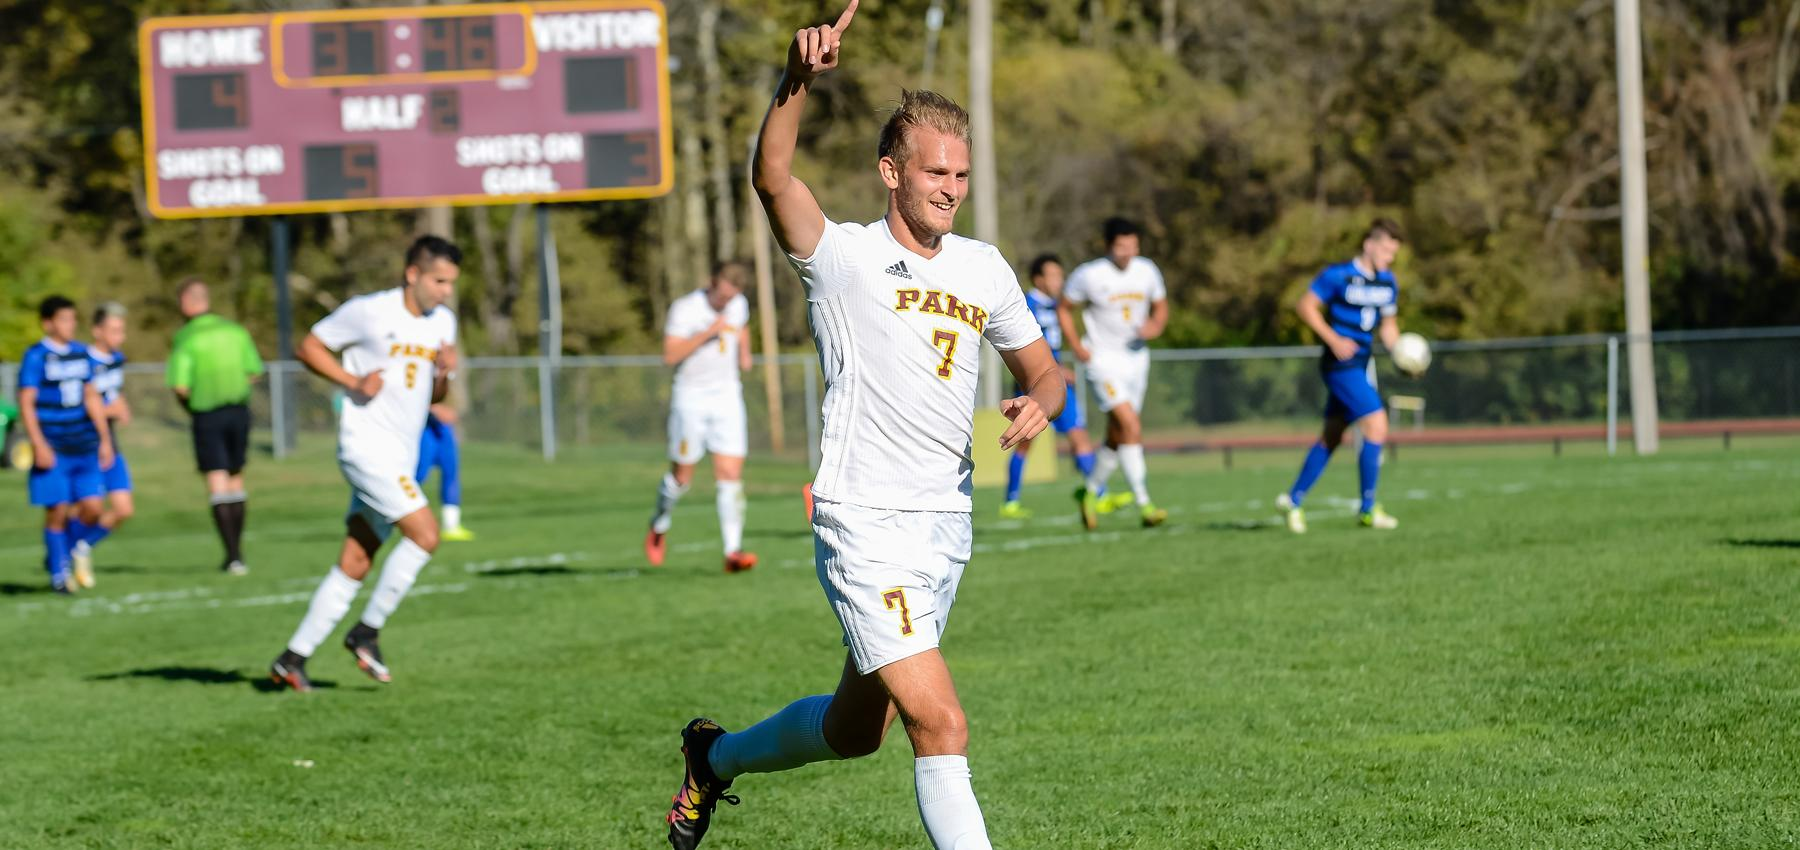 Daniel Jackson assisted on the game-winning goal against Briar Cliff.